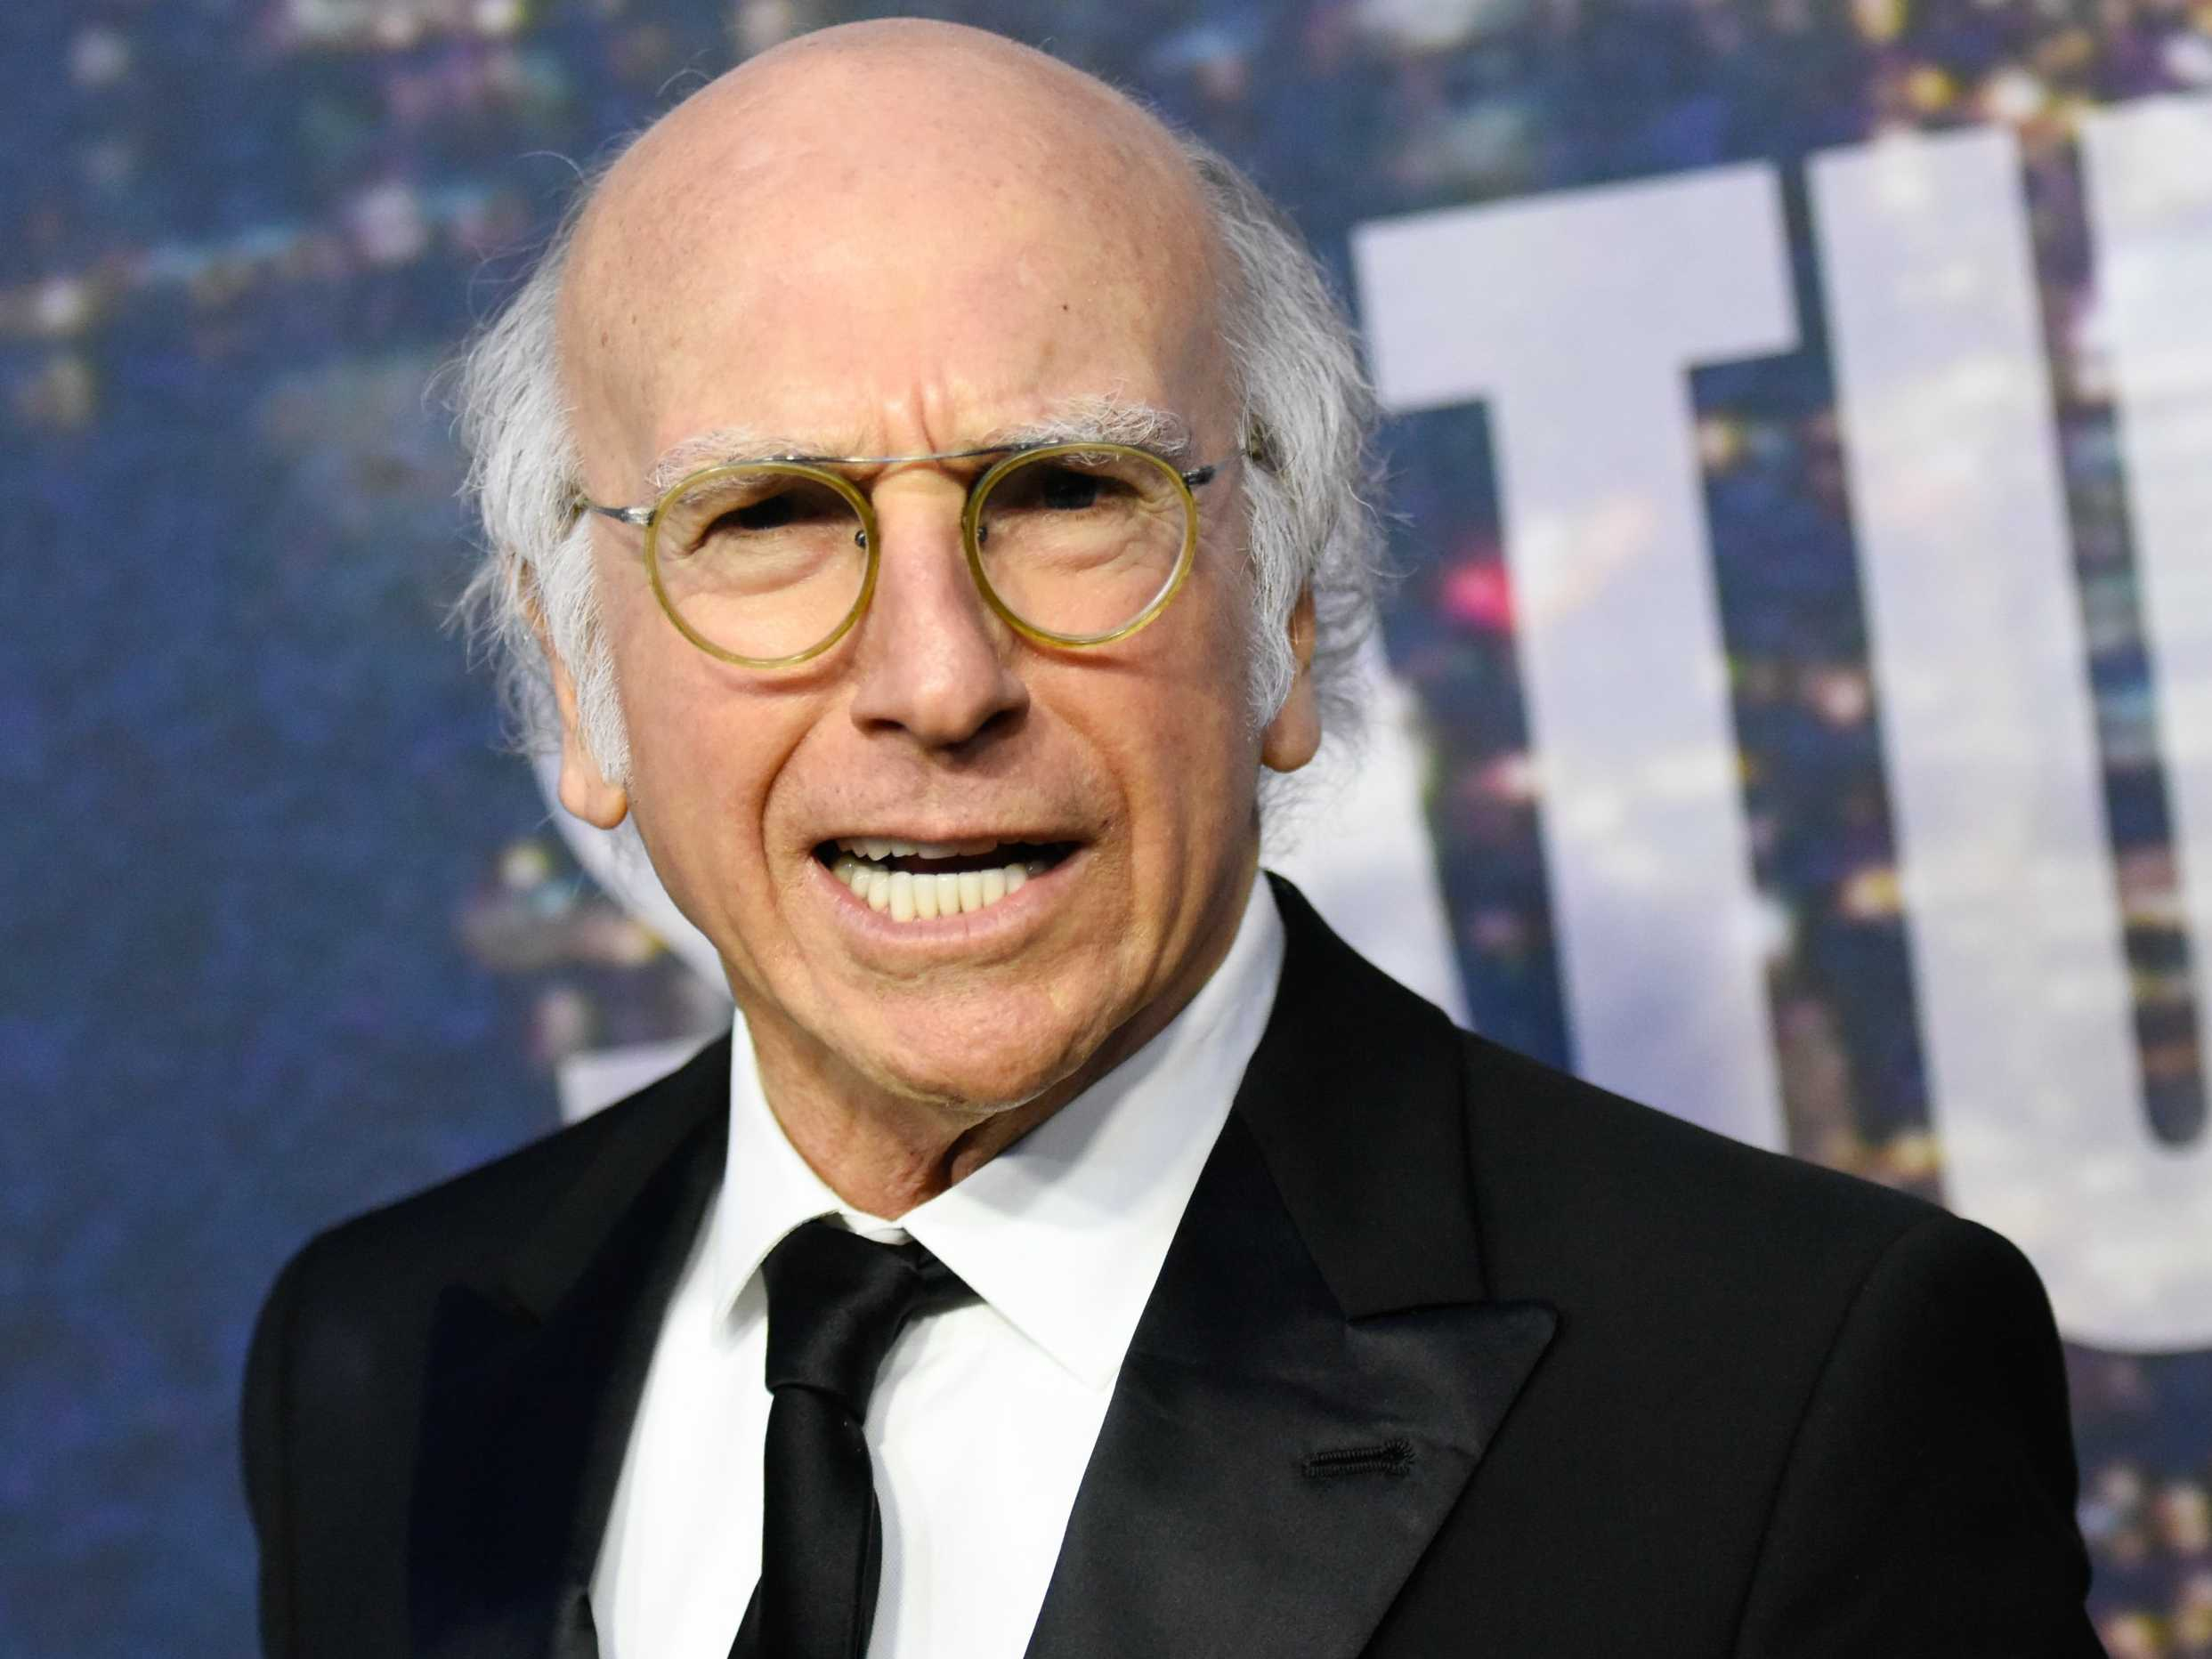 larry-david-thinks-reports-about-his-massive-net-worth-are-absurd